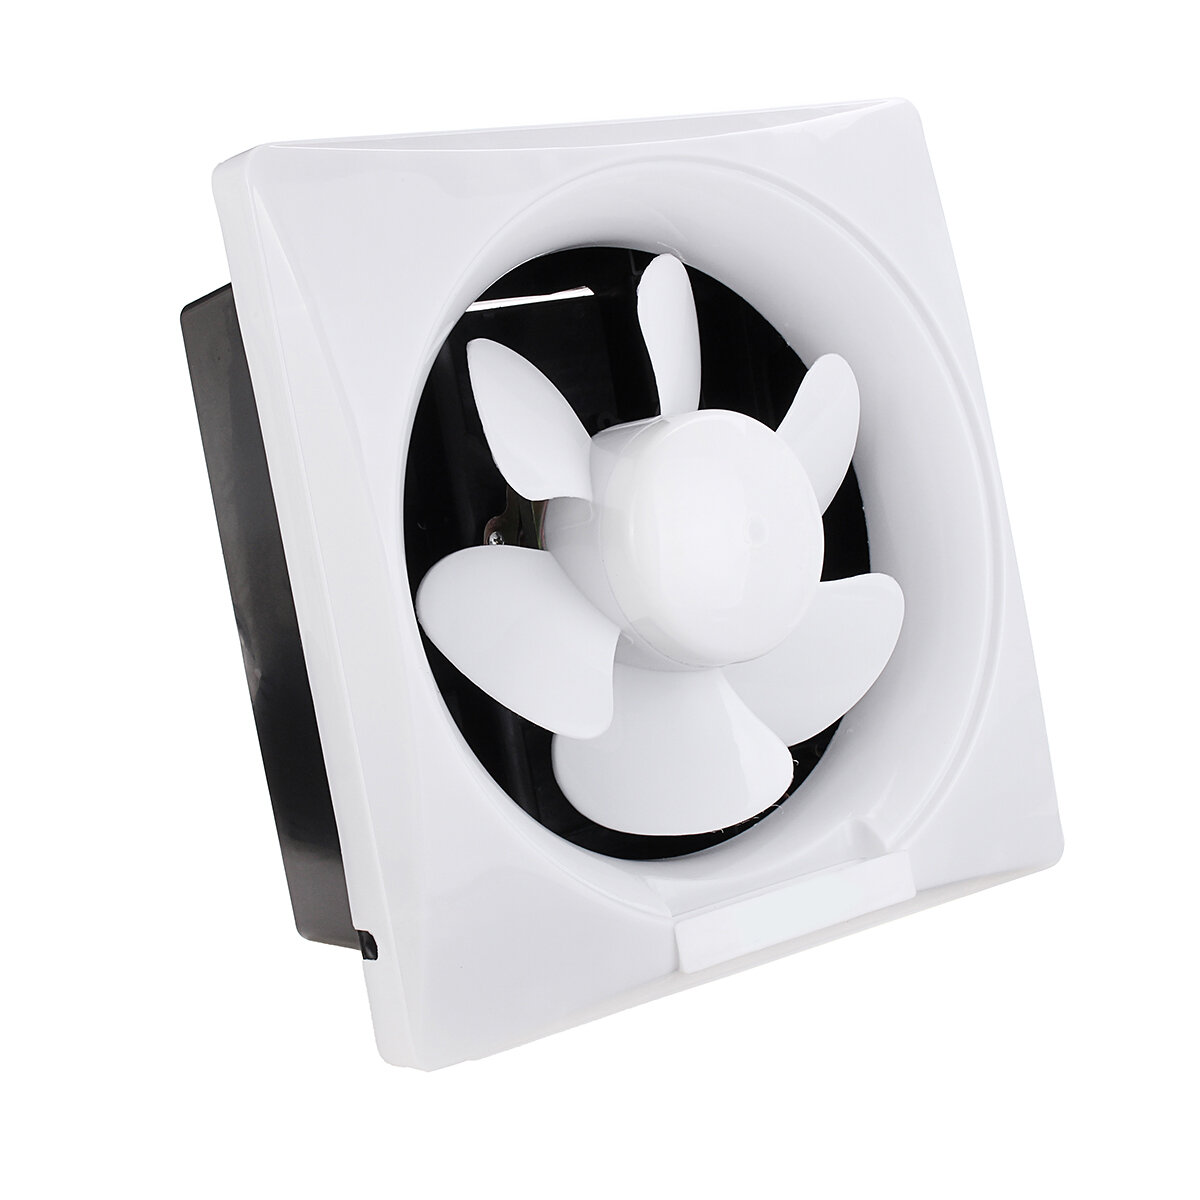 40W Ventilator Extractor Exhaust Fans Blower Air Blower 6 Inch 8Inch 10Inch 12Inch